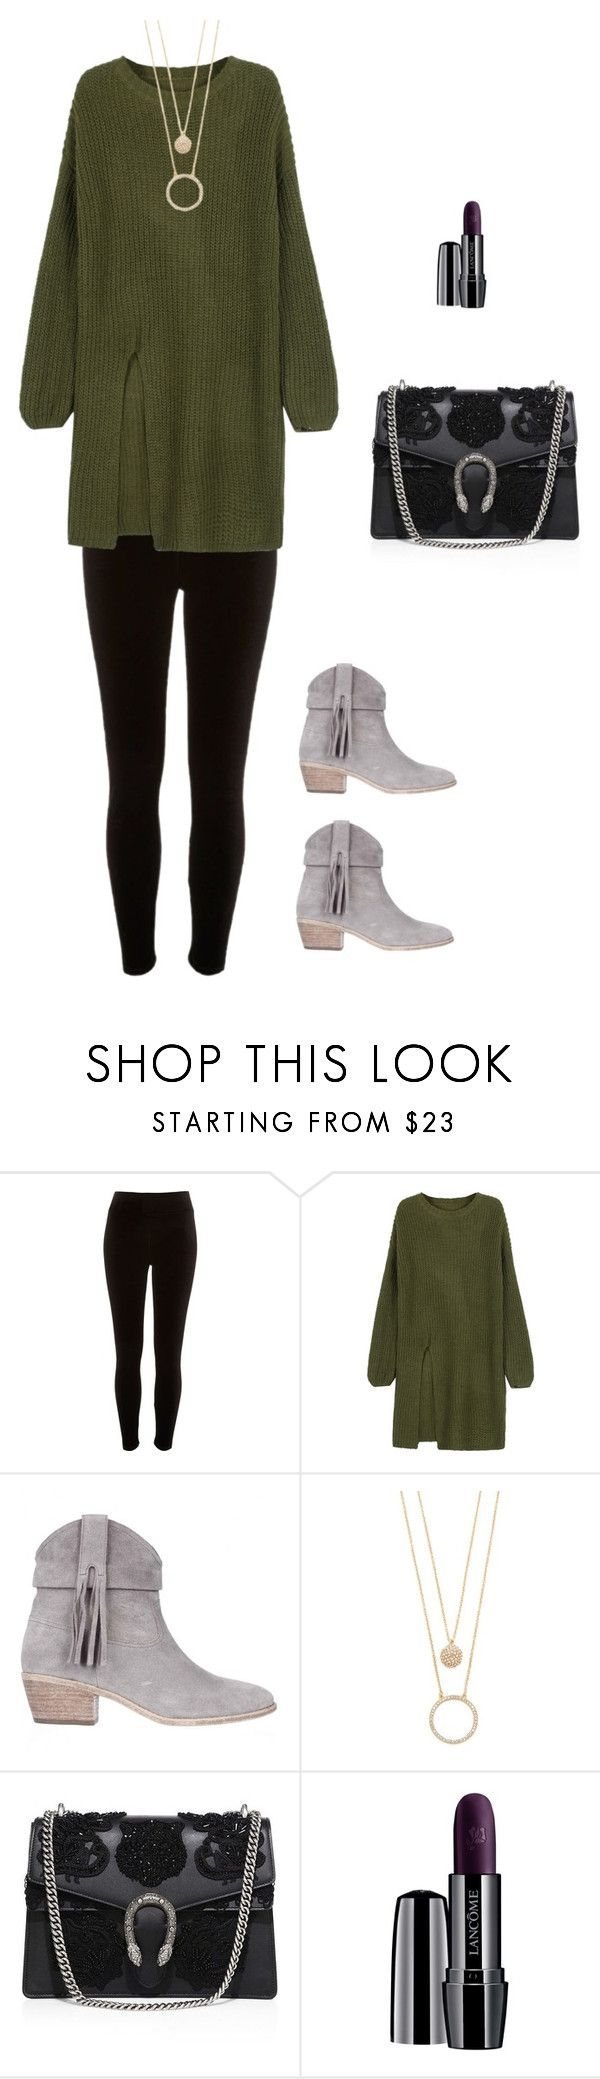 """""""olive u"""" by meditate ❤ liked on Polyvore featuring River Island, WithChic, Joie, Kate Spade, Gucci, Lancôme, Boots, olive, Leggings and boldcolor"""